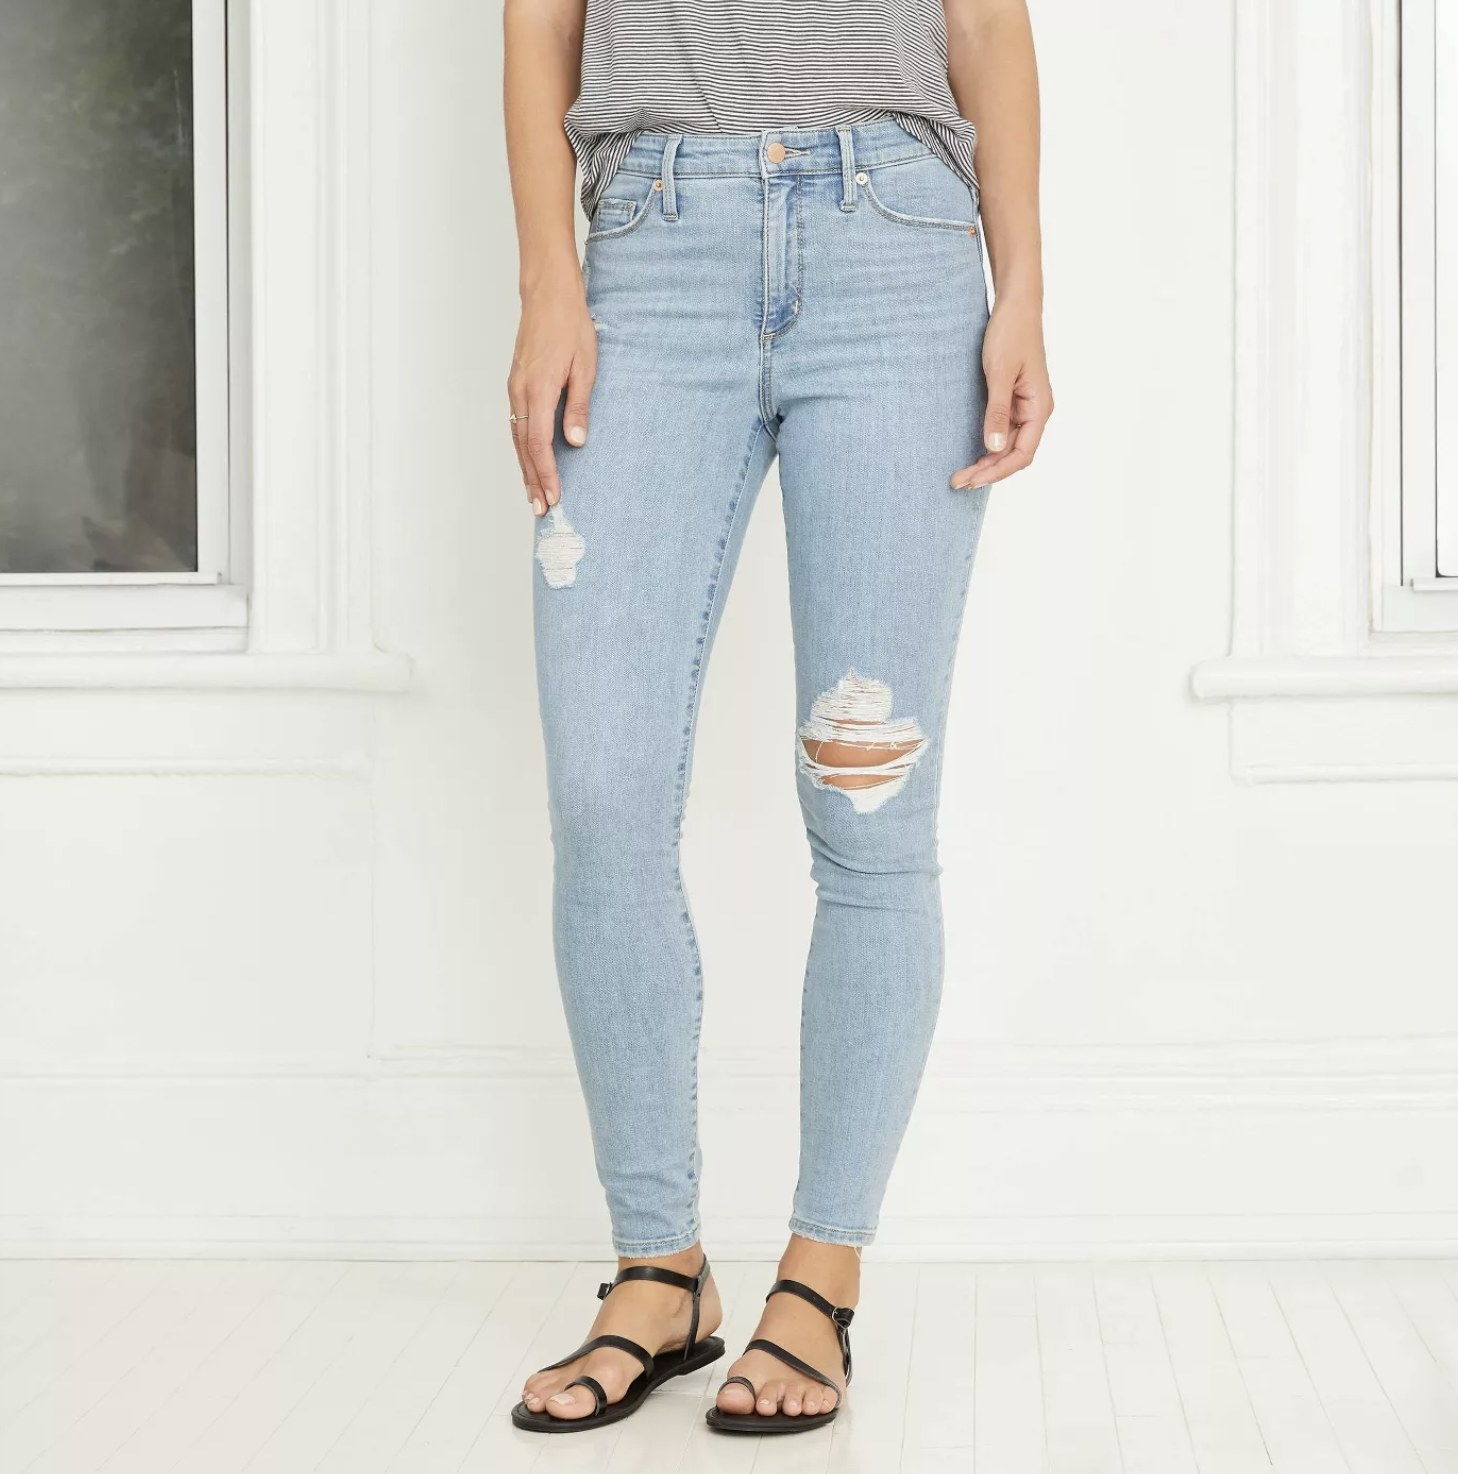 Model is wearing light wash super high-rise skinny jeans and black sandals